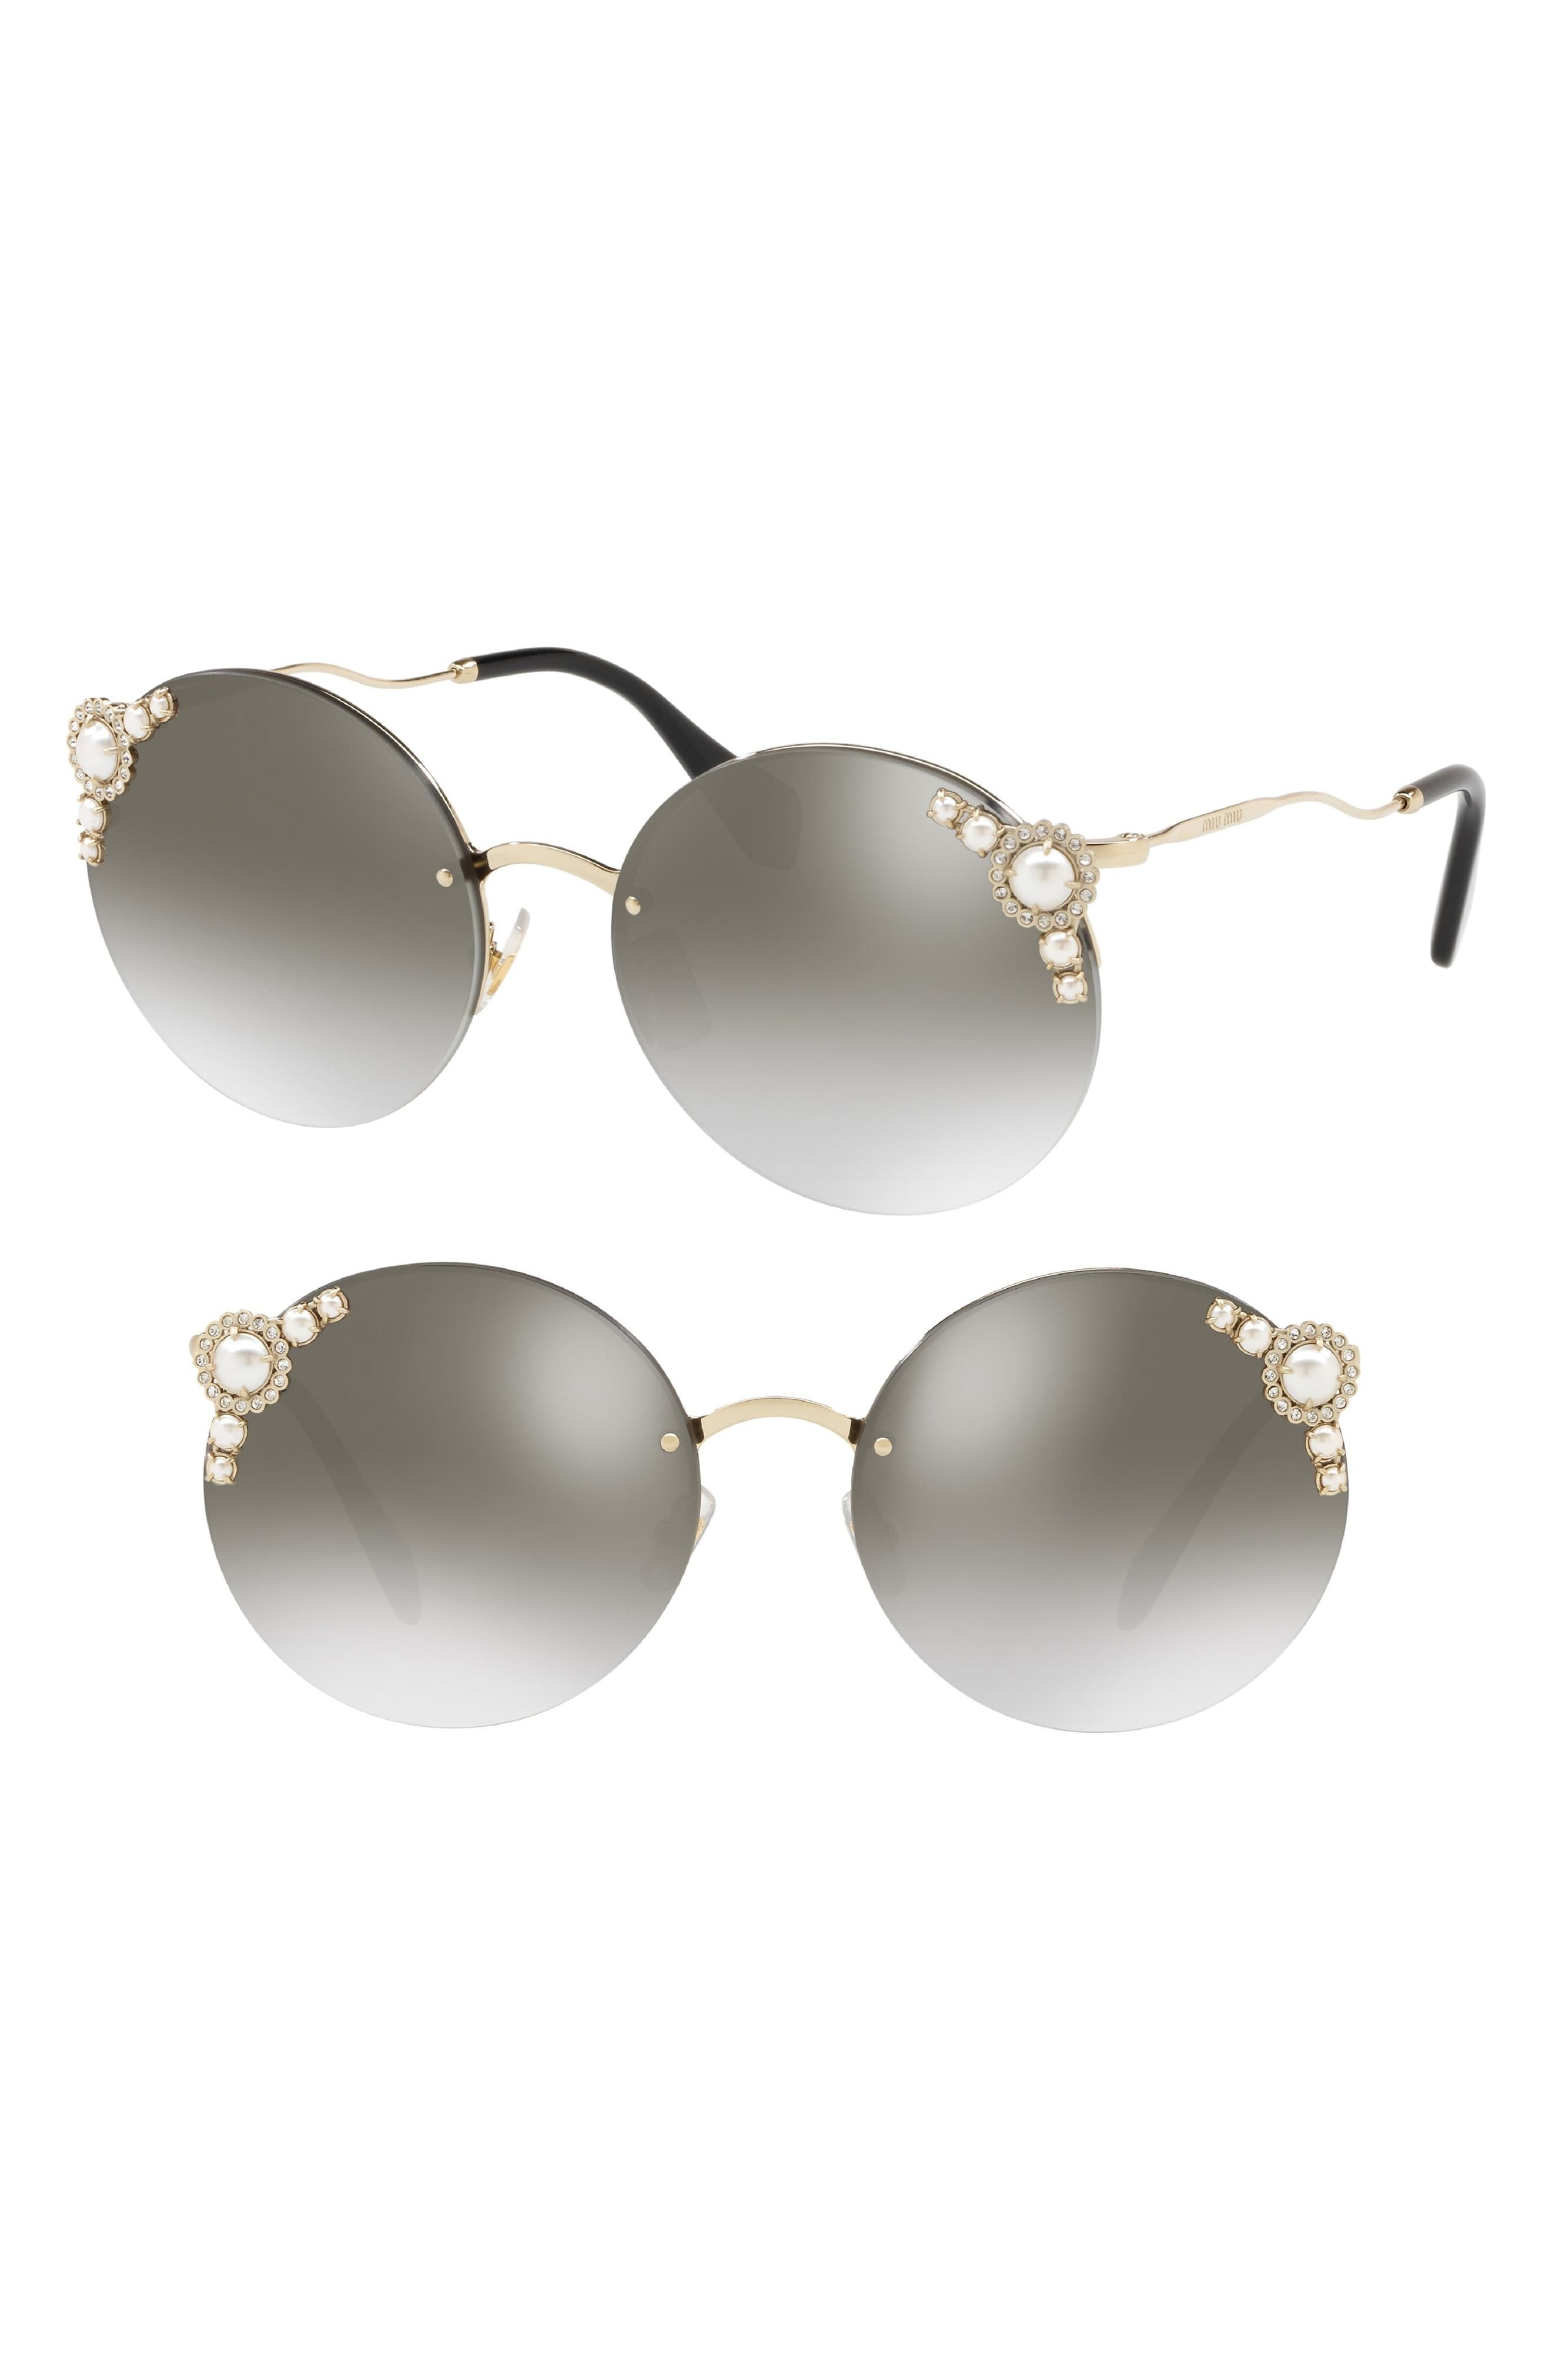 12f77e177ab7 Women's Miu Miu 60Mm Gradient Embellished Sunglasses - Grey Gradient Mirror